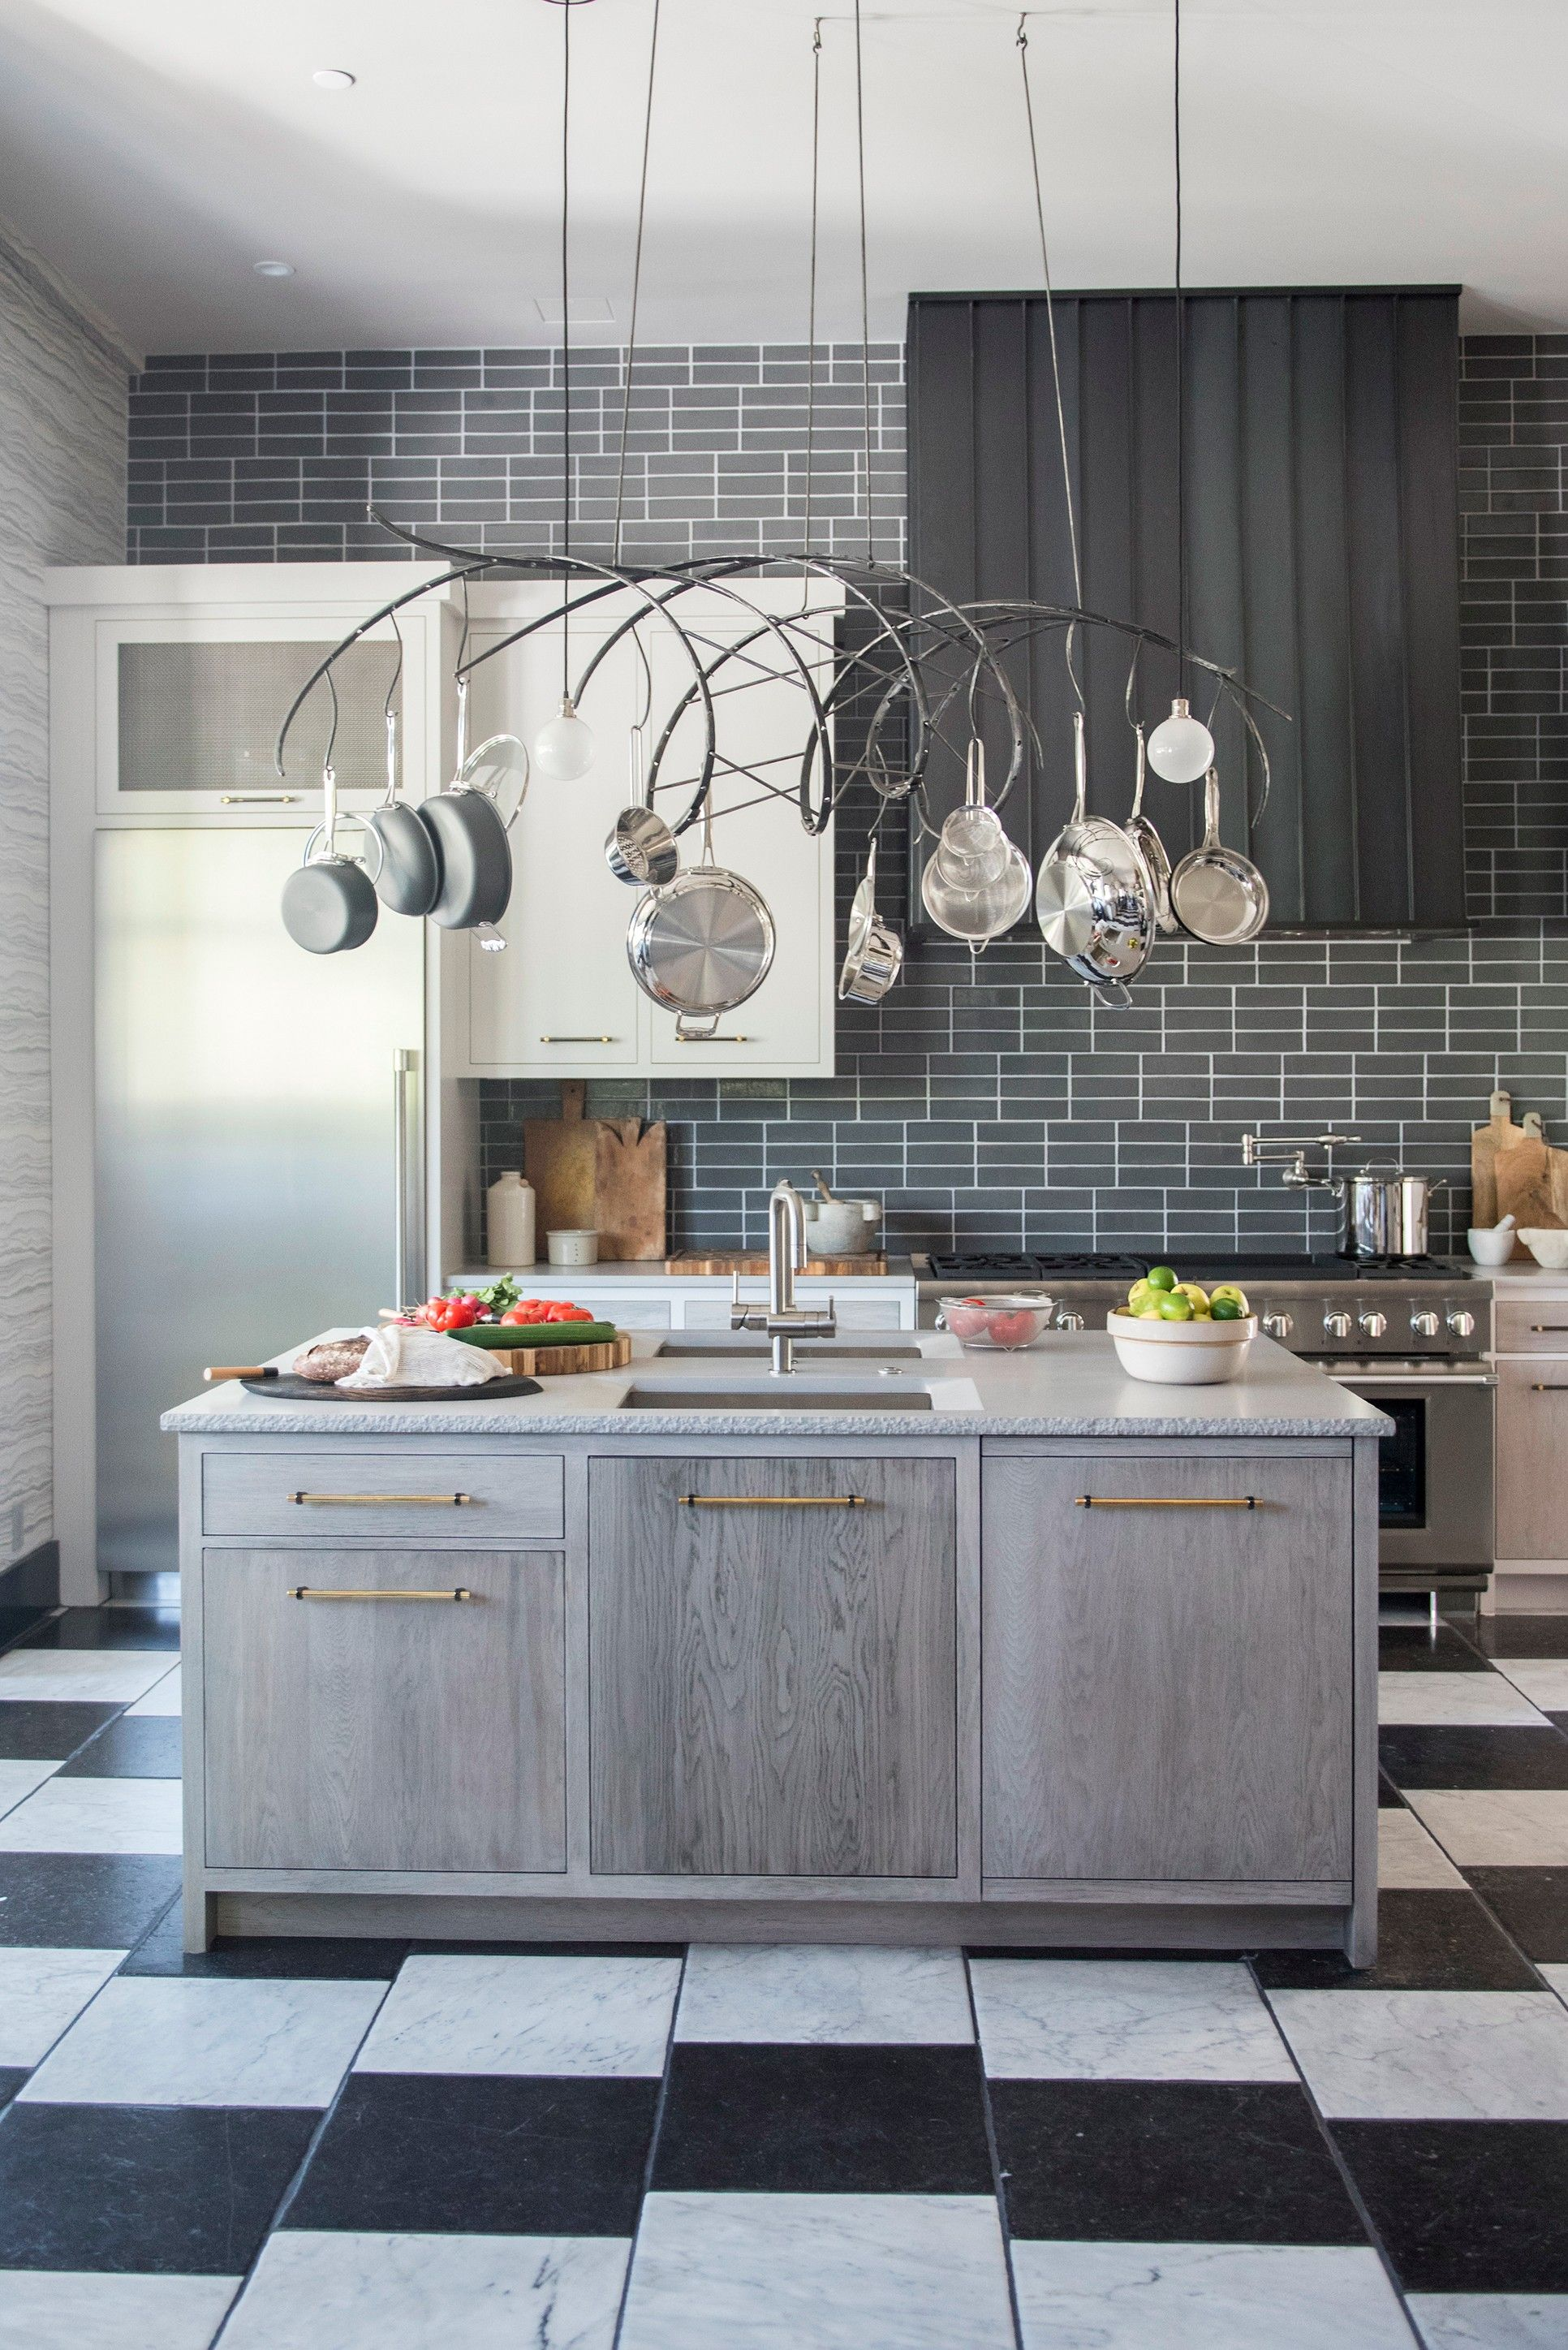 Innovative Design Ideas to Steal From a Designer Showcase Kitchen